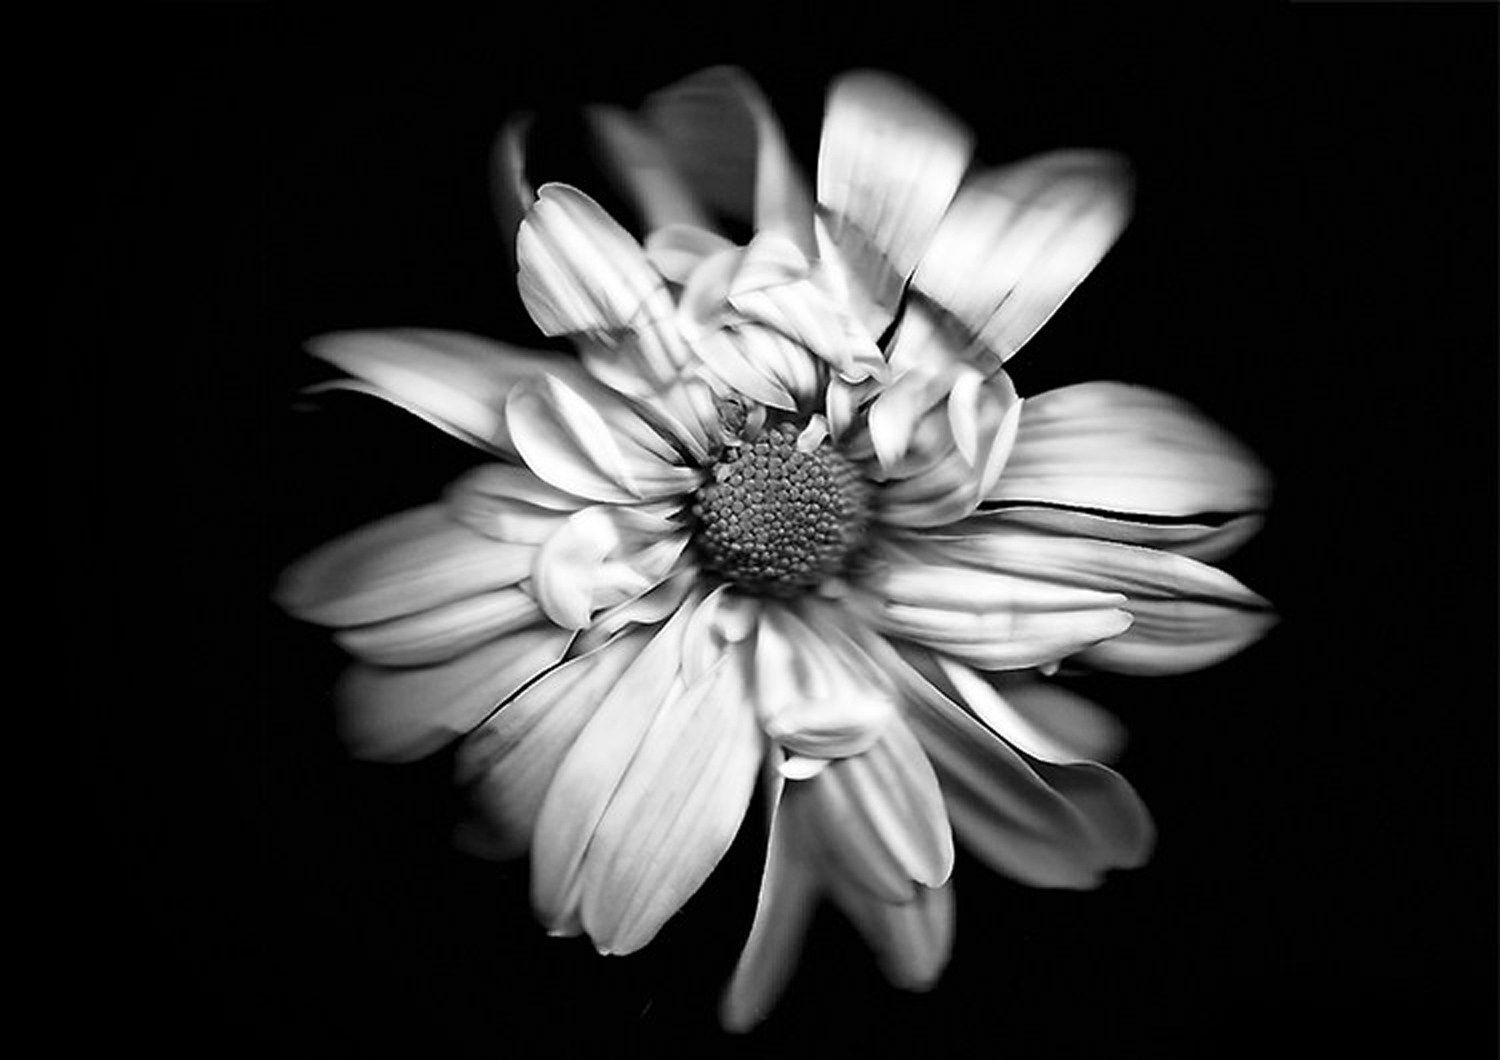 5 Tips for Photographing Flowers with Impact | Landscape ...